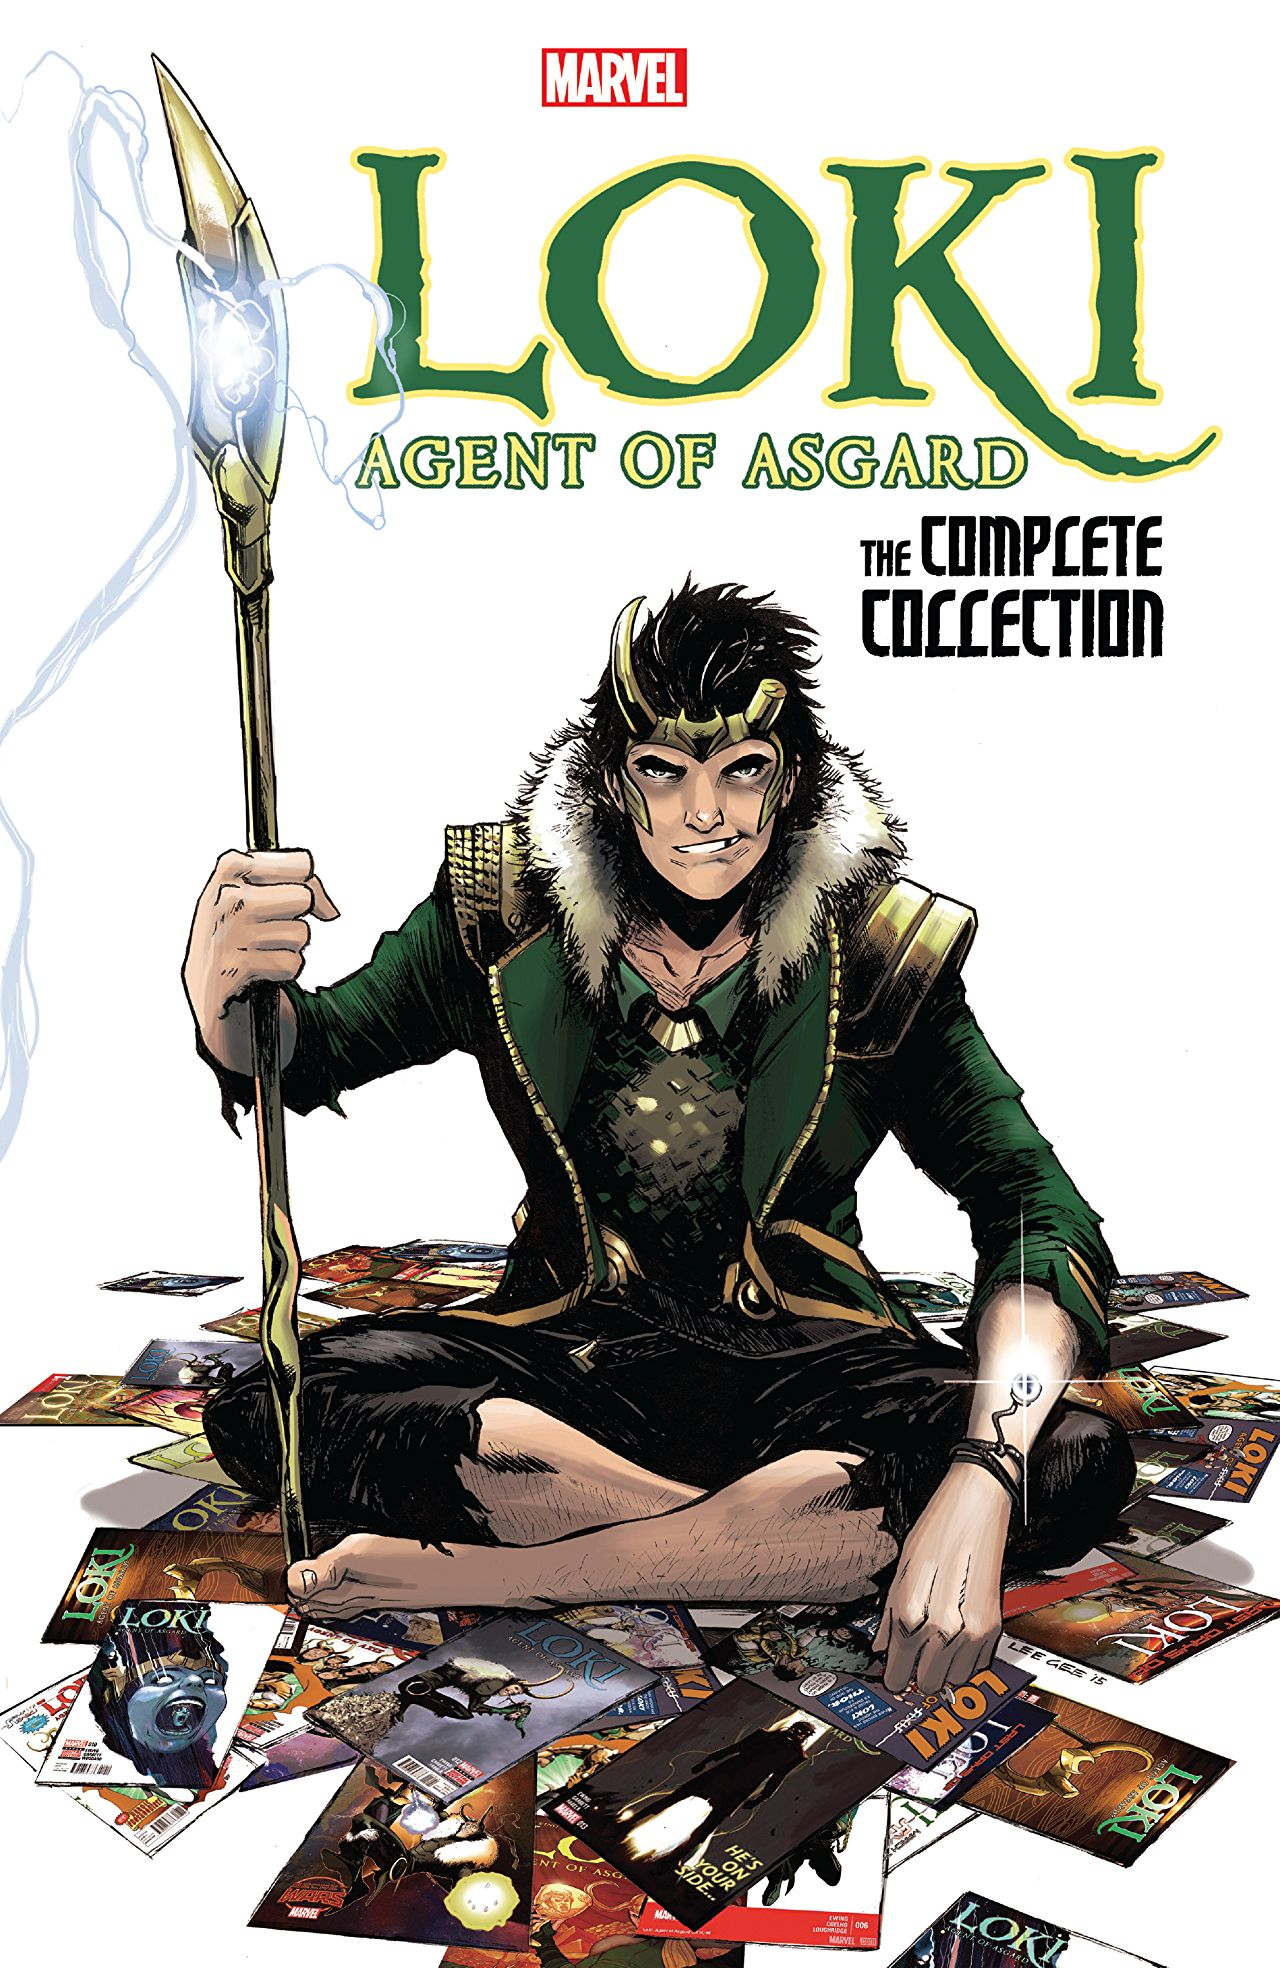 Loki: Agent of Asgard: The Complete Collection review